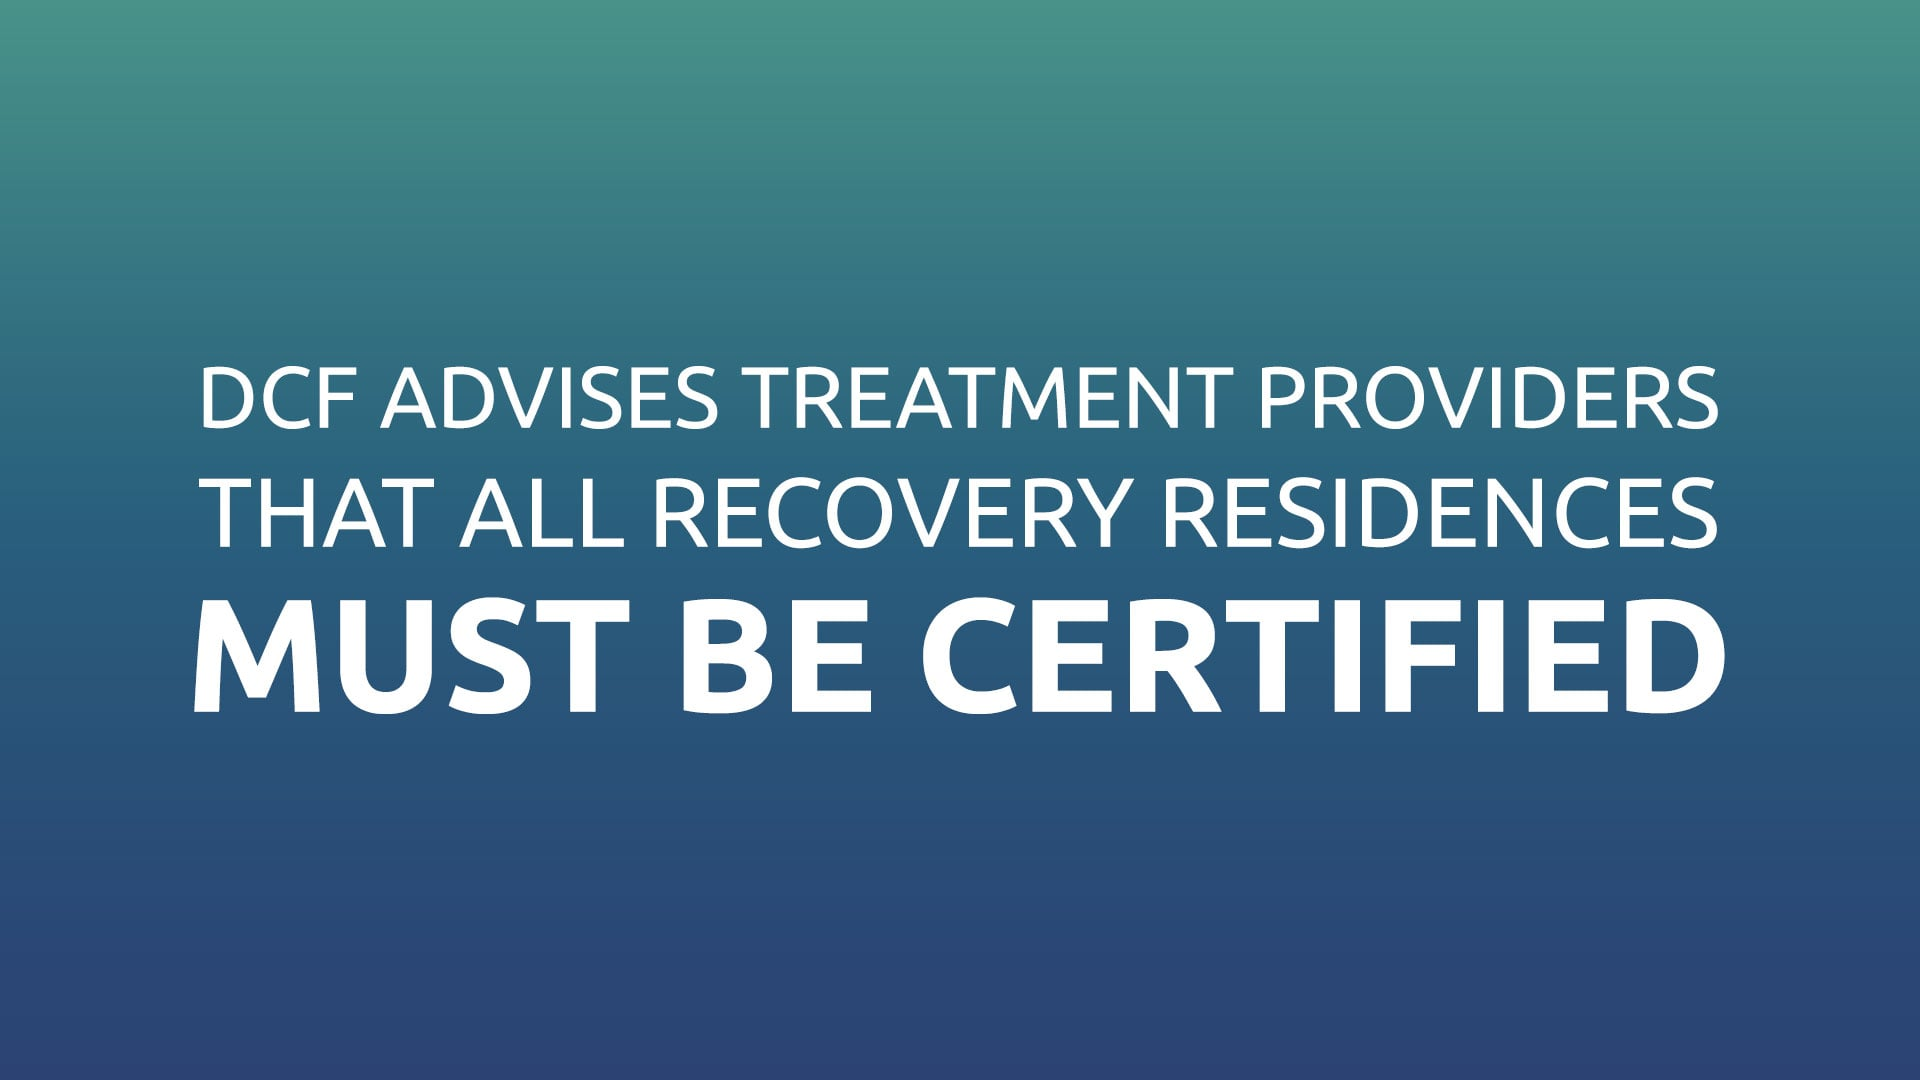 DCF Advises Treatment Providers That ALL Recovery Residences Must Be Certified